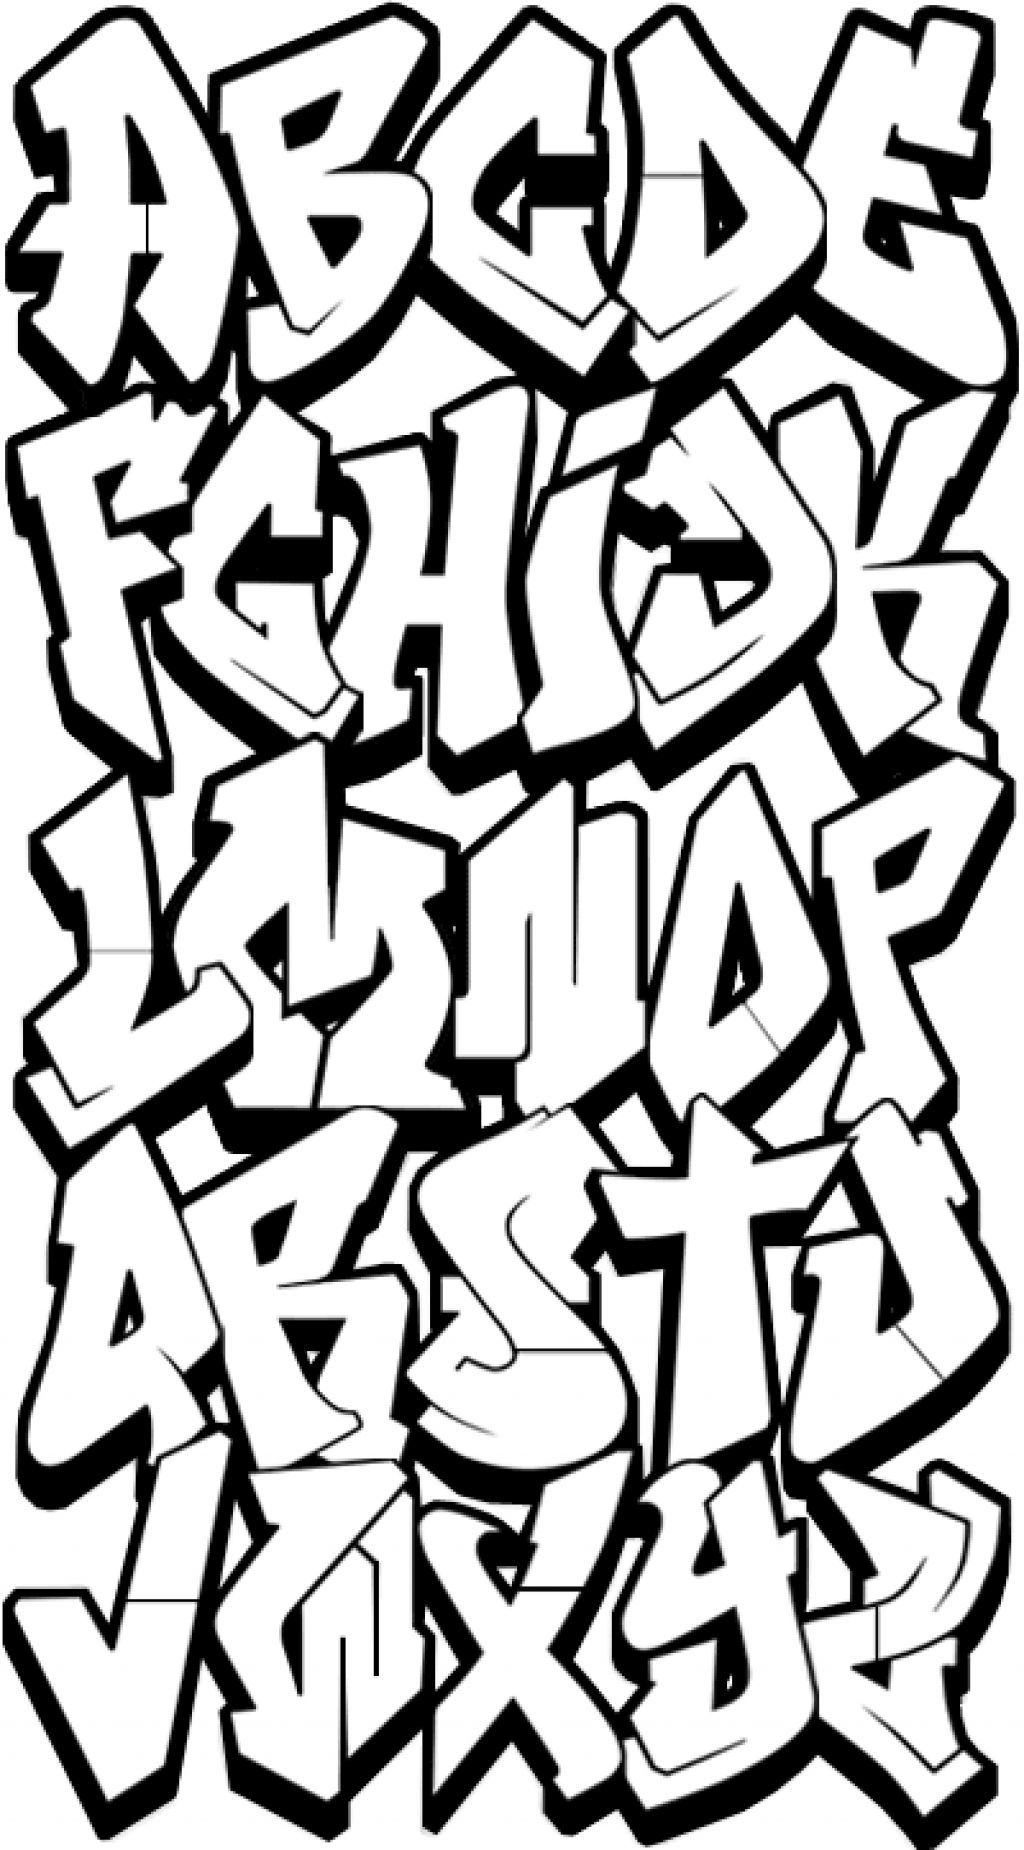 Draw Graffiti Letters Alphabet 54b8c1fb87af2 1024x1850